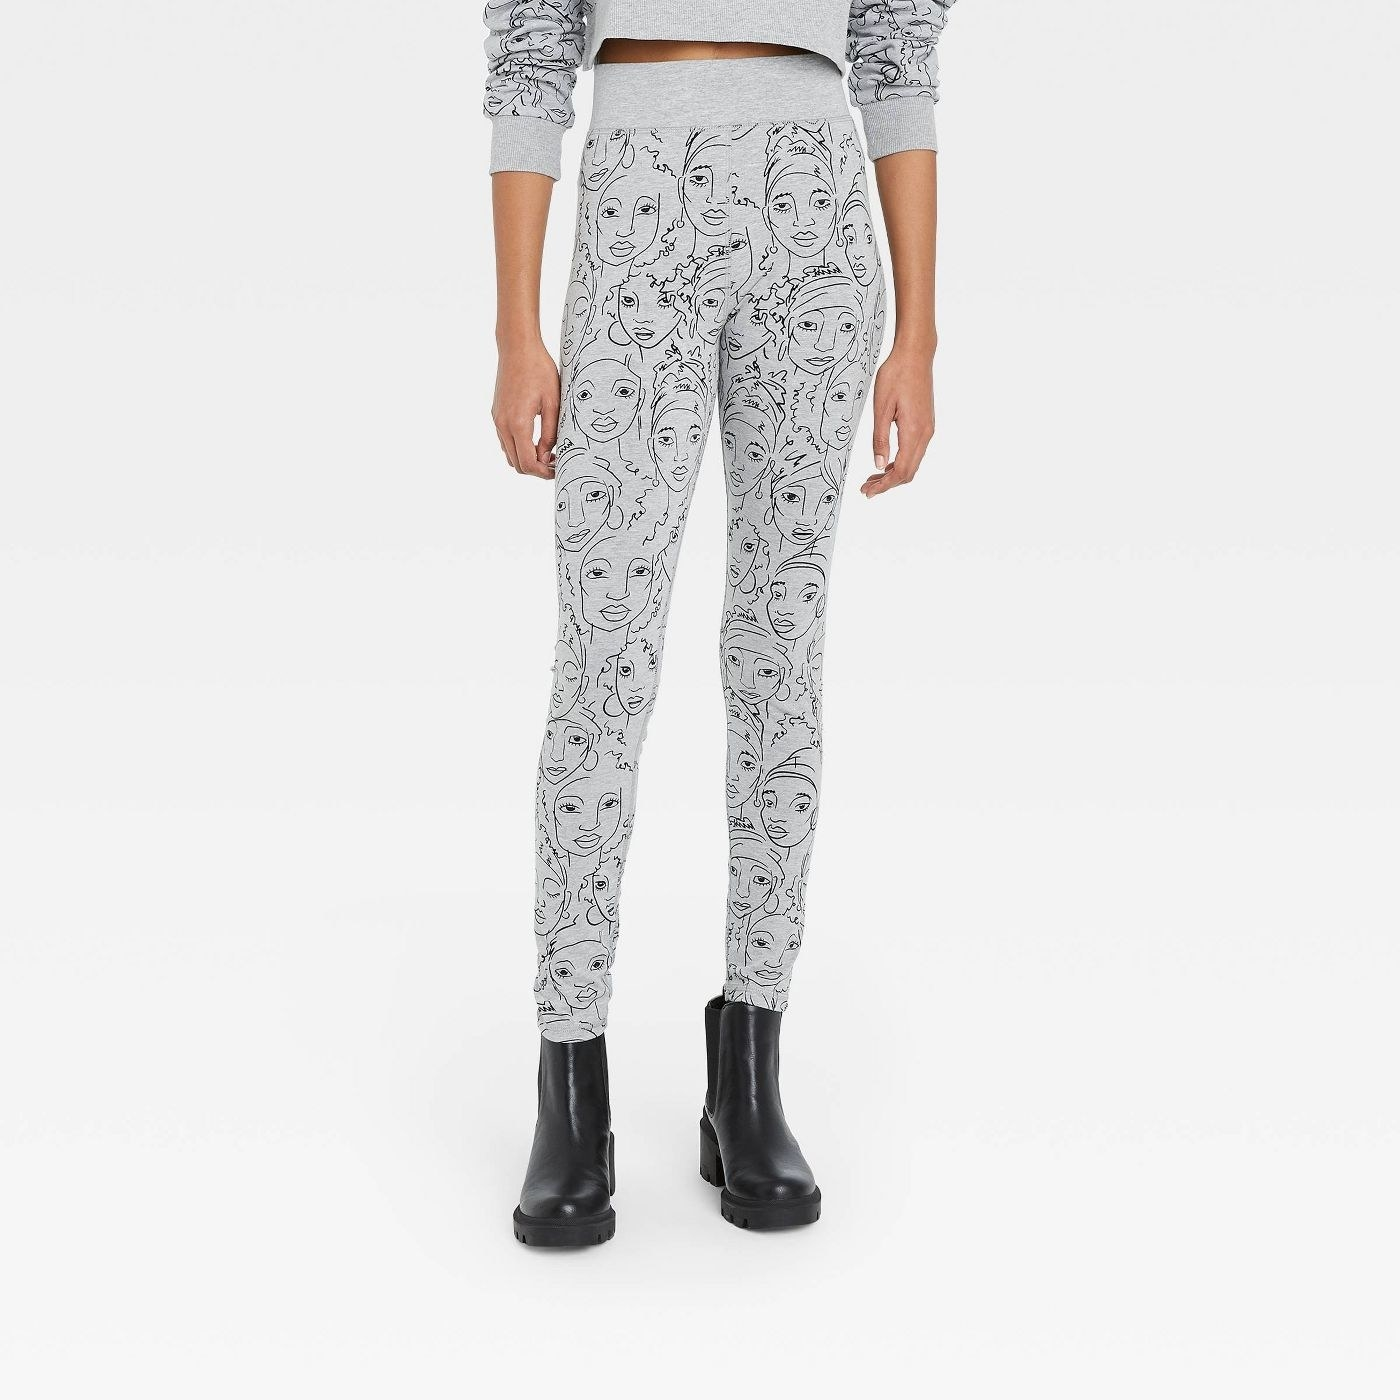 The sweatpants with illustrations of faces